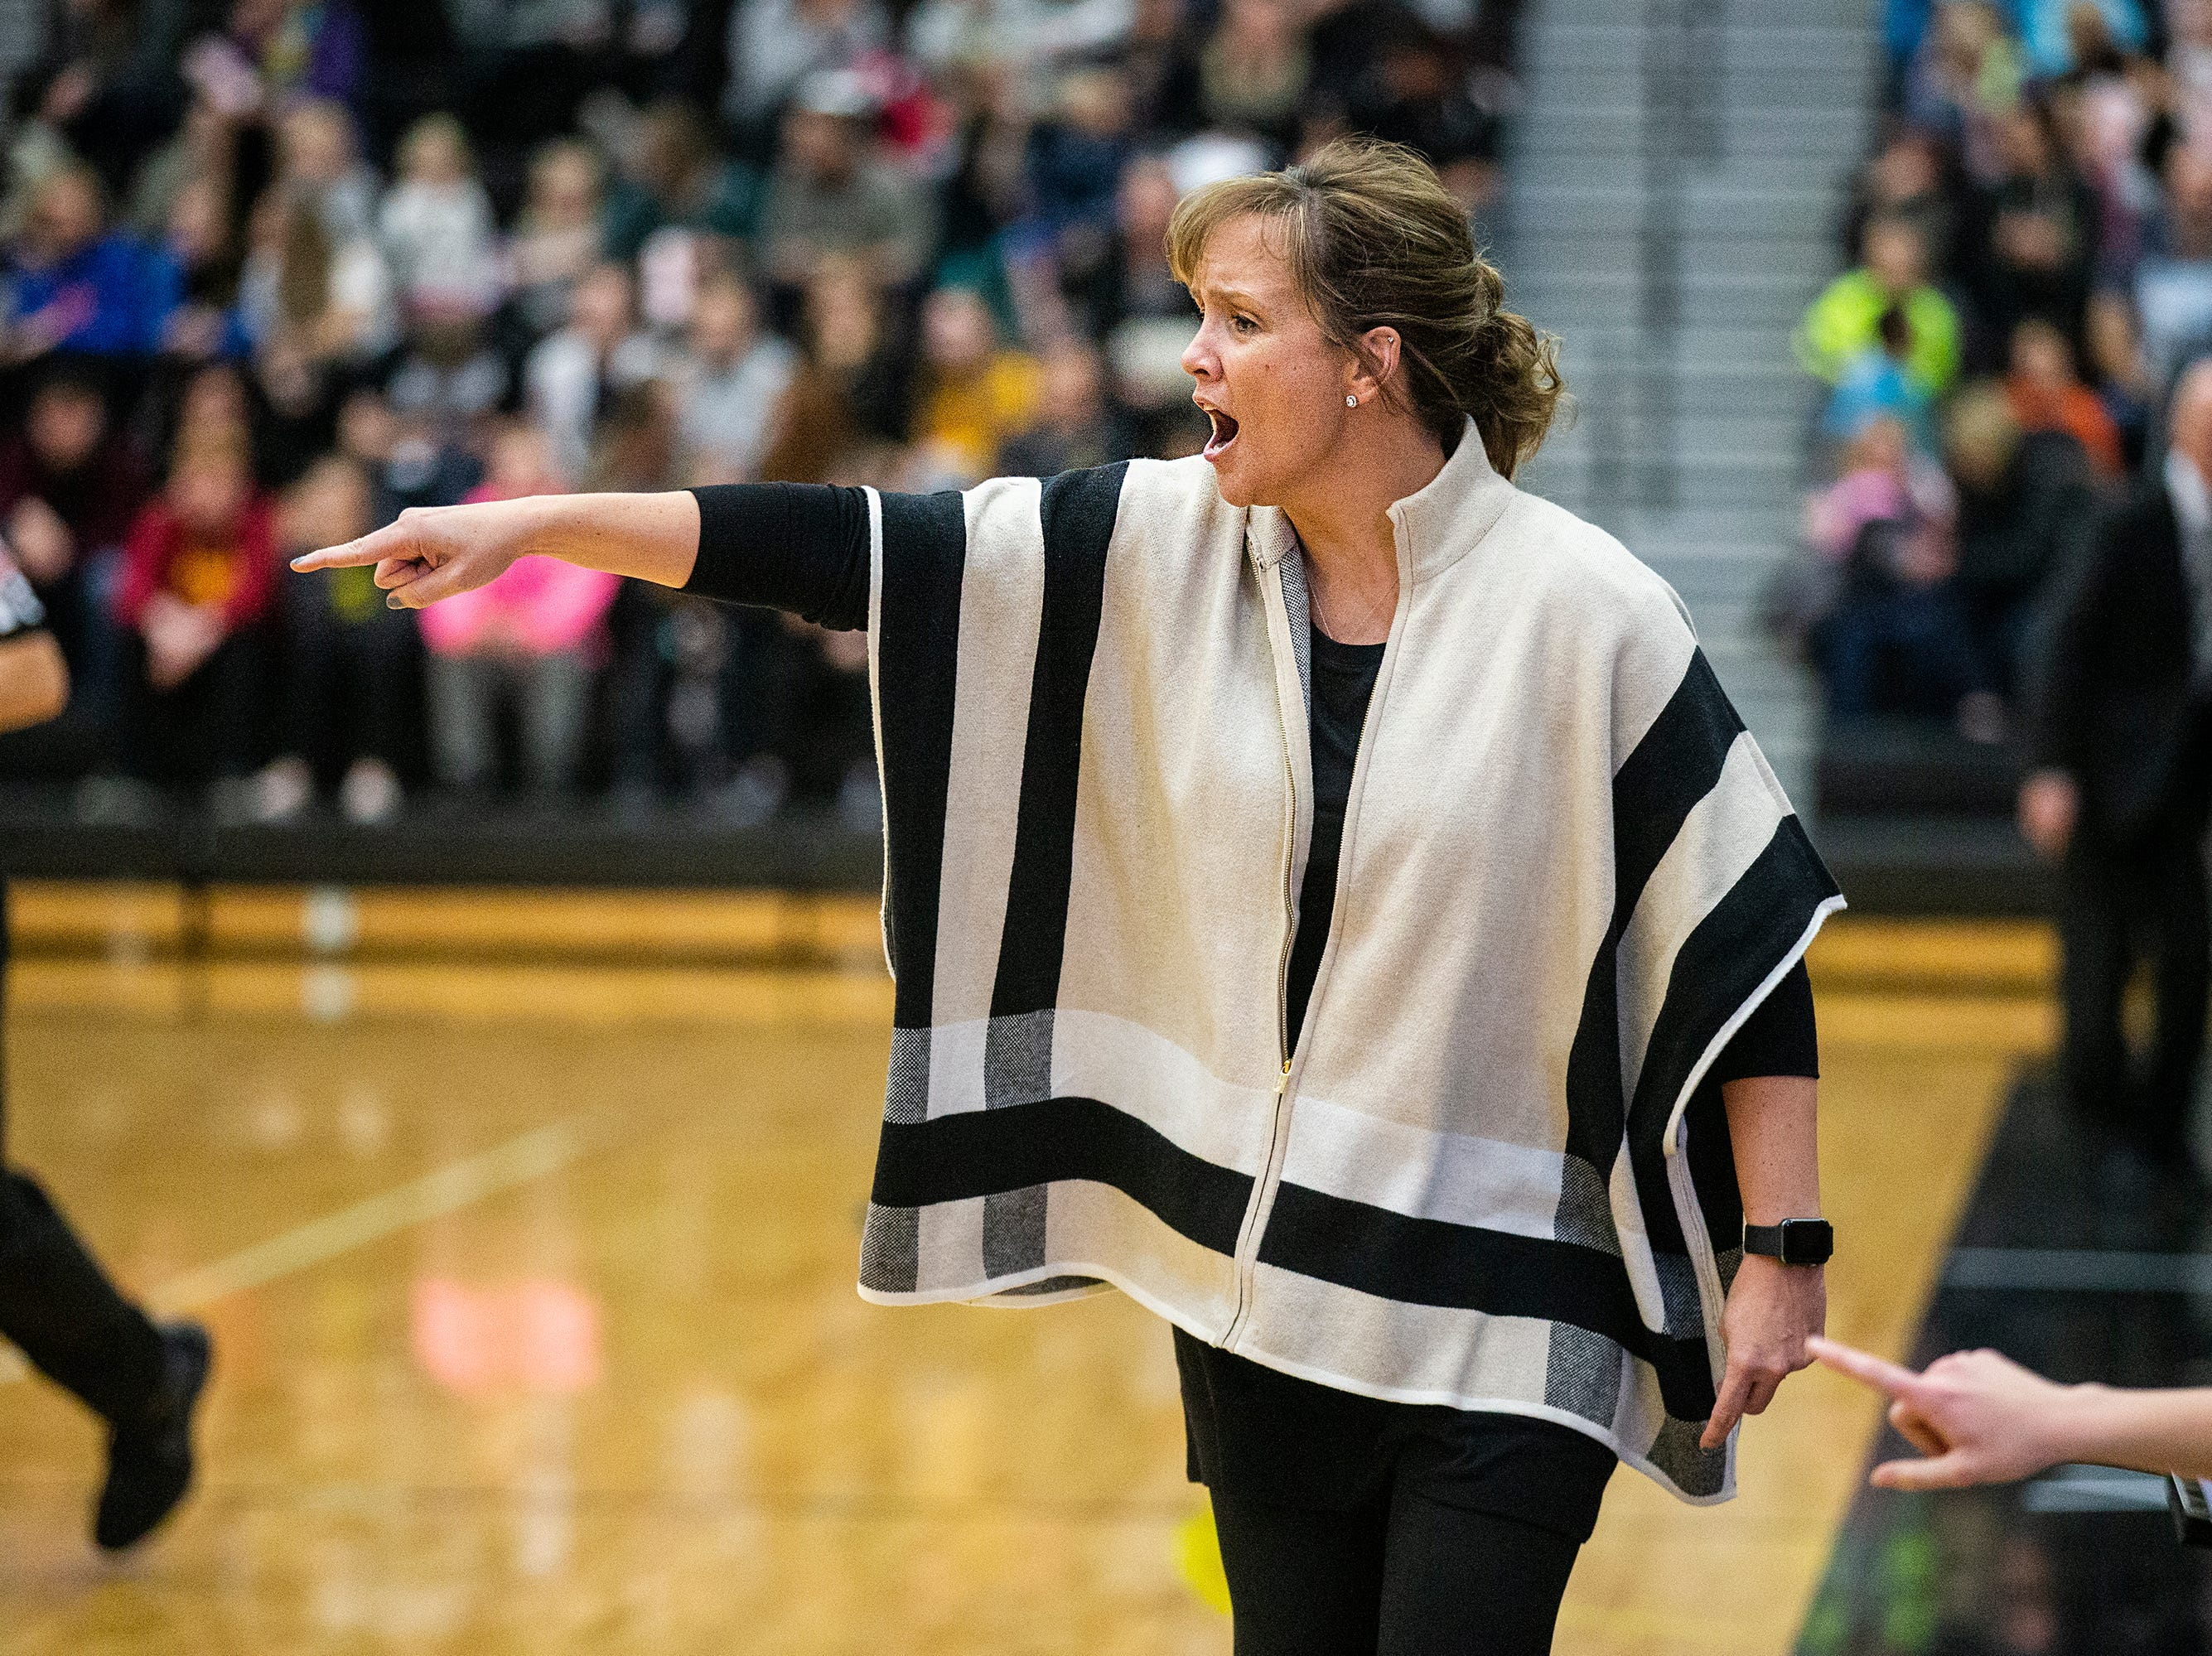 Southeast Polk Coach Tracy Dailey calls out to her team during the Southeast Polk vs. Ankeny Centennial girls' basketball game on Tuesday, Nov. 27, 2018, at Ankeny Centennial High School.